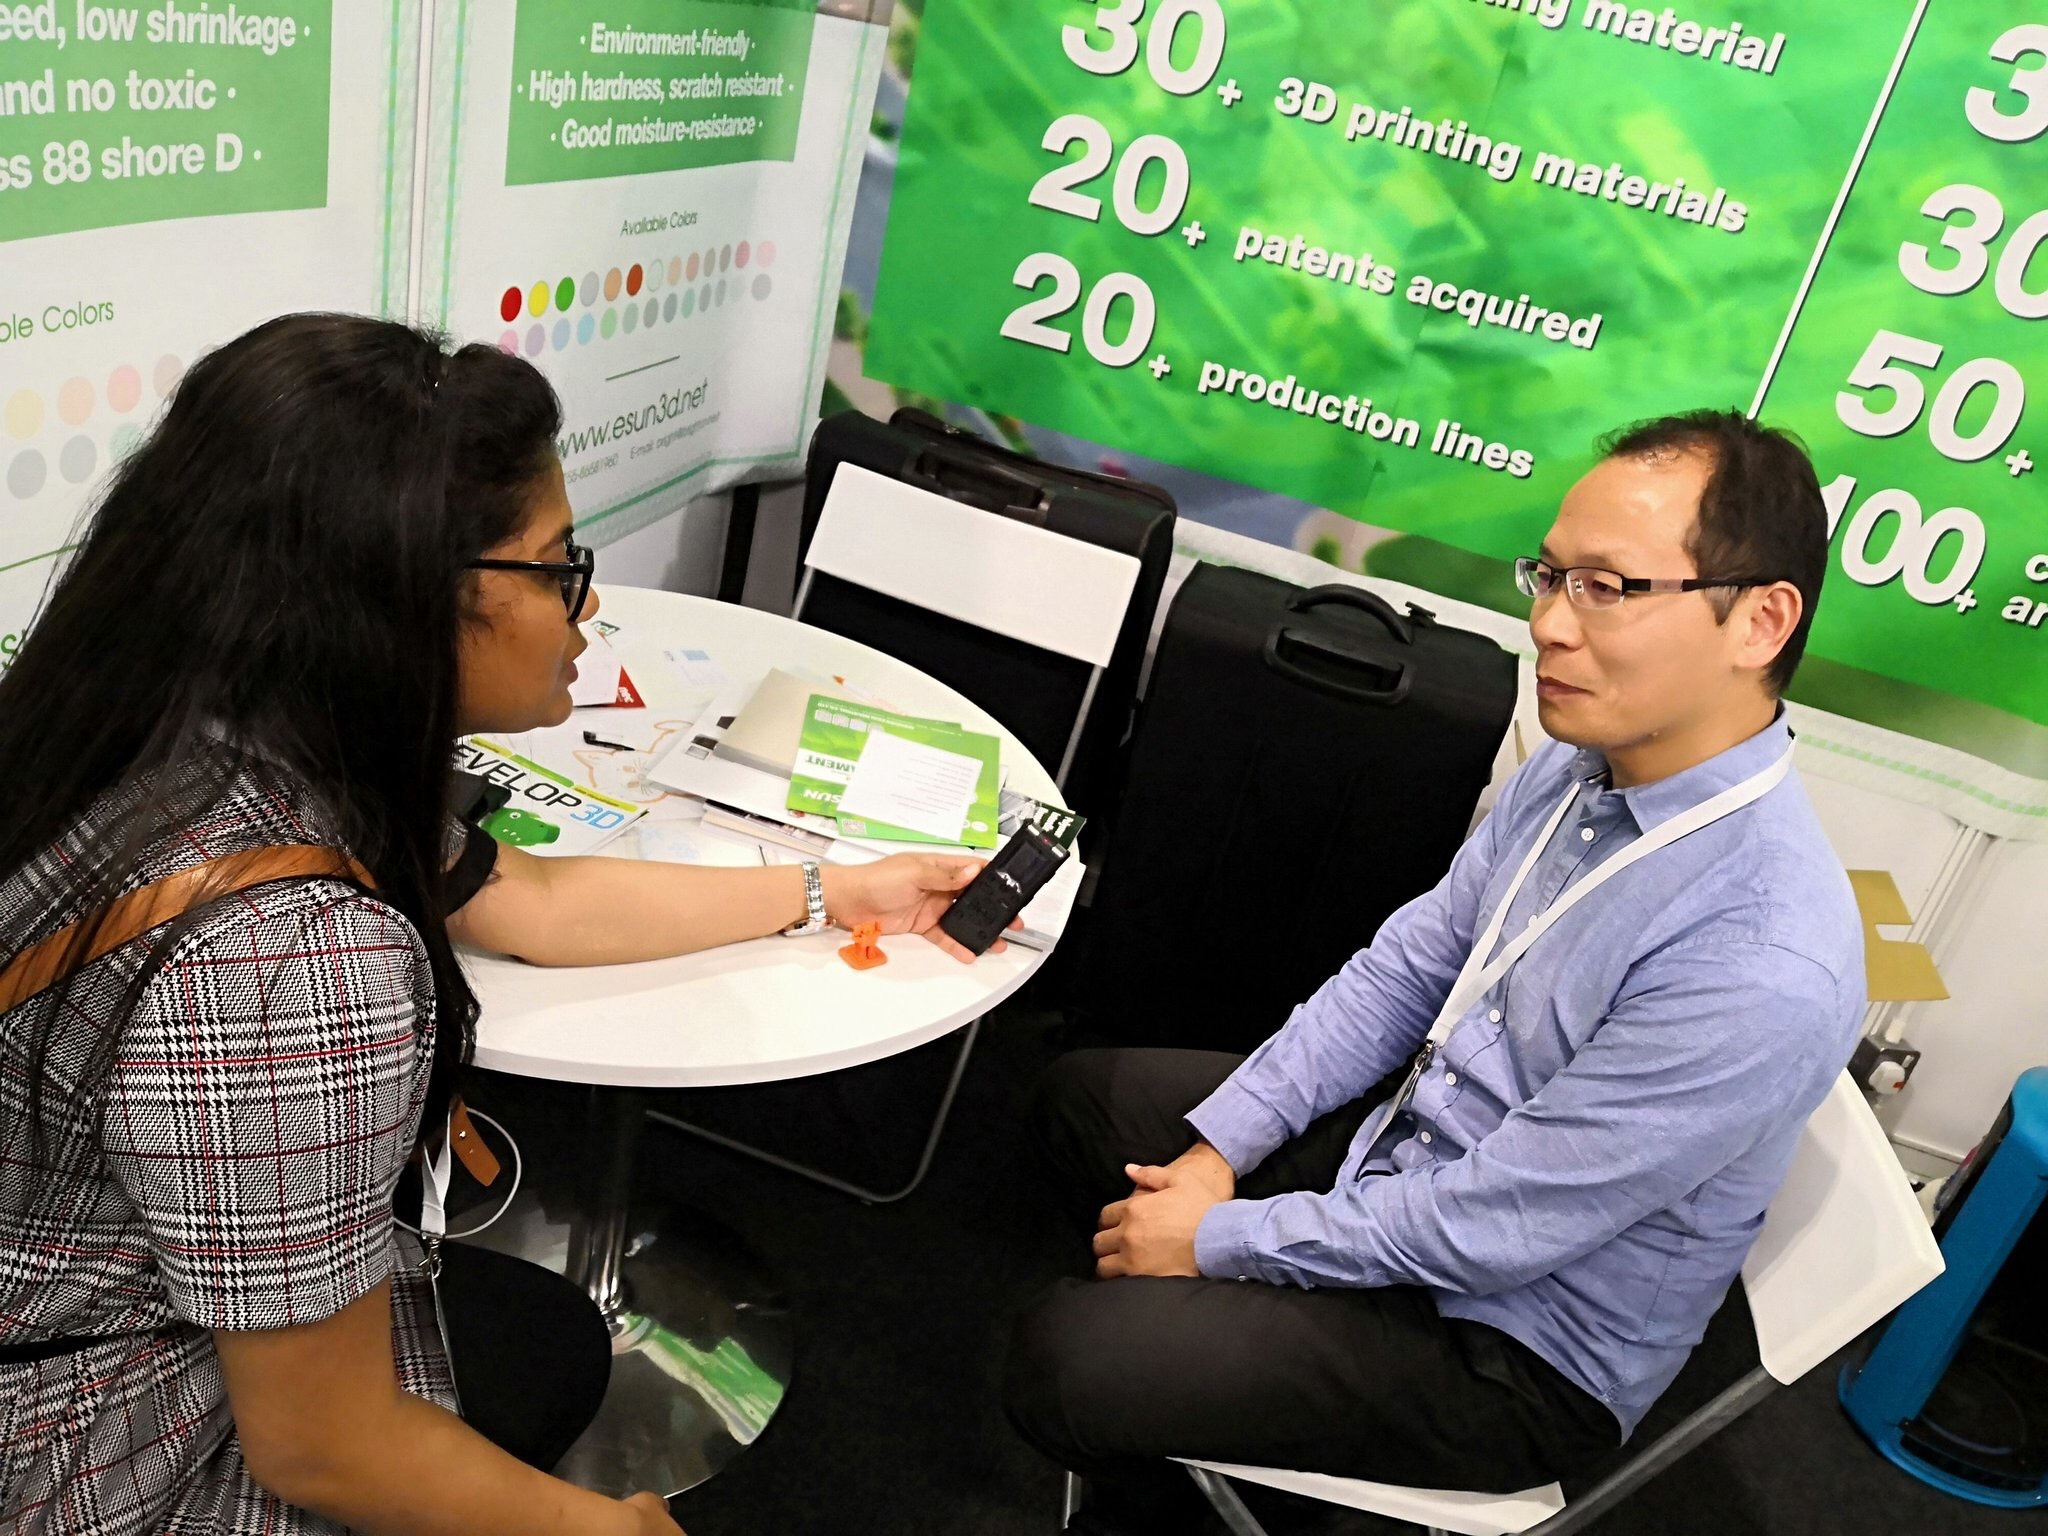 Kevin Yang interviewing for 3D Printing Industry at TCT 2018 in the UK. Photo by eSUN.